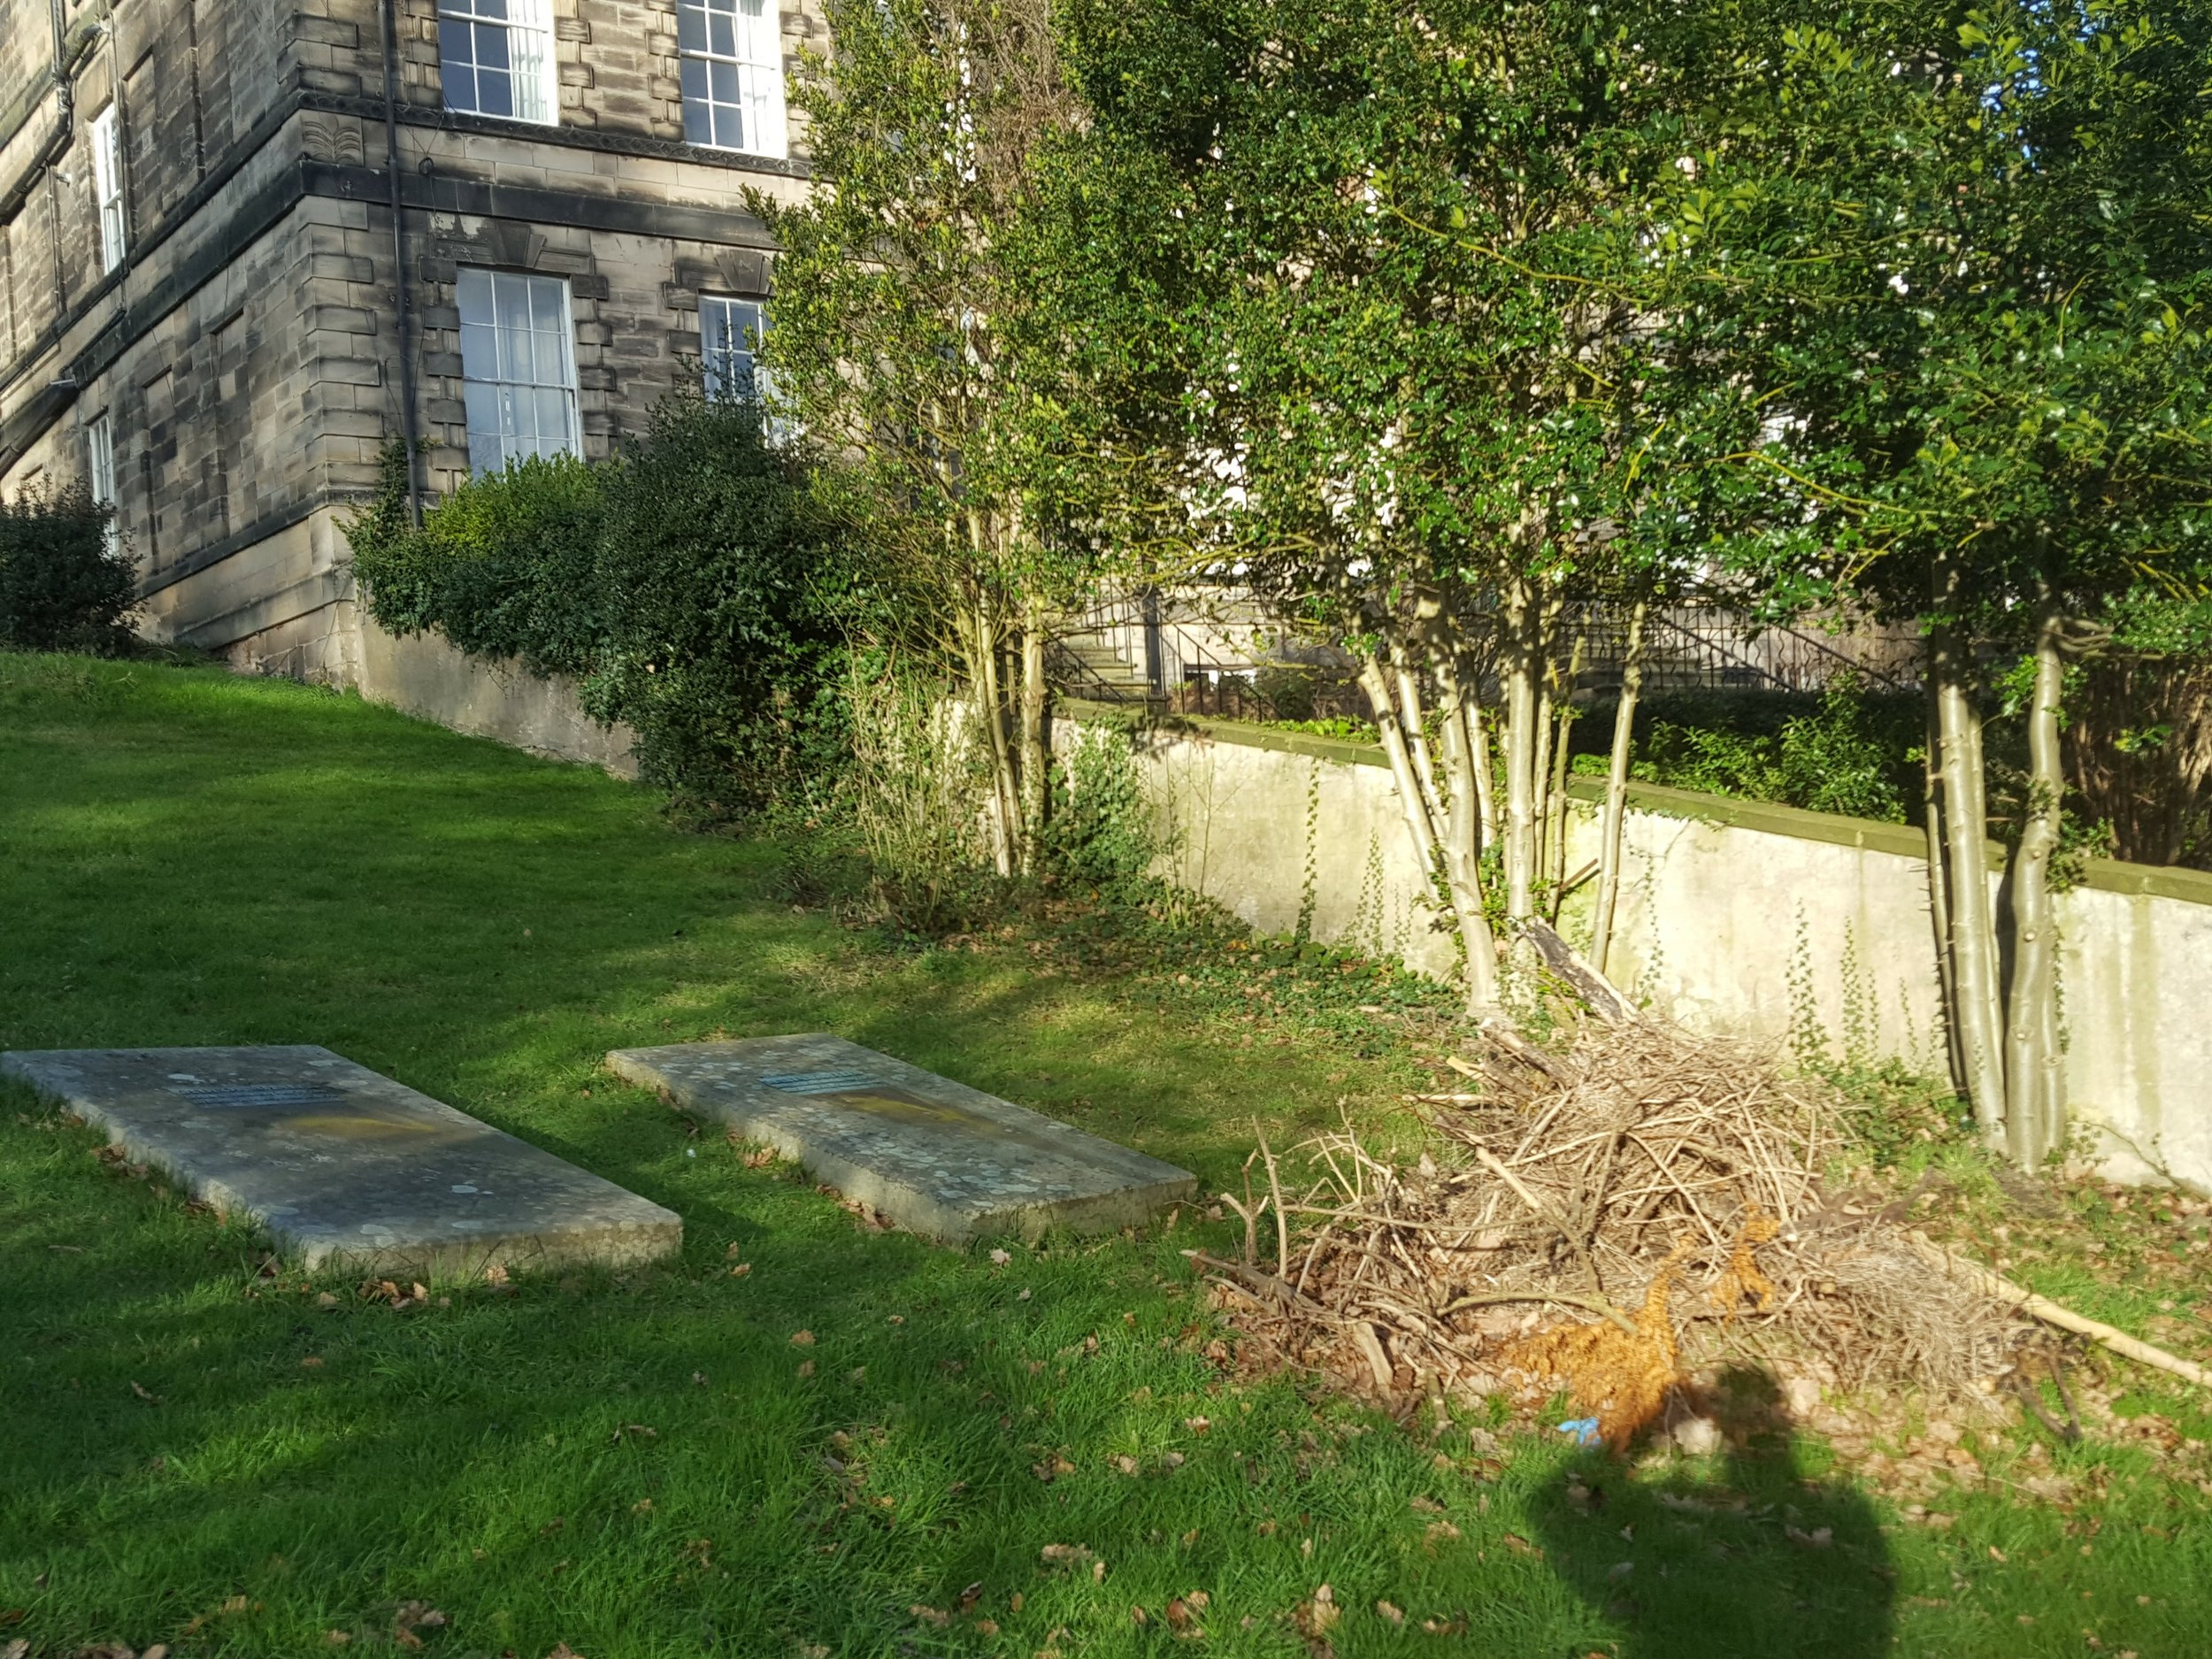 Graves swept and tidied